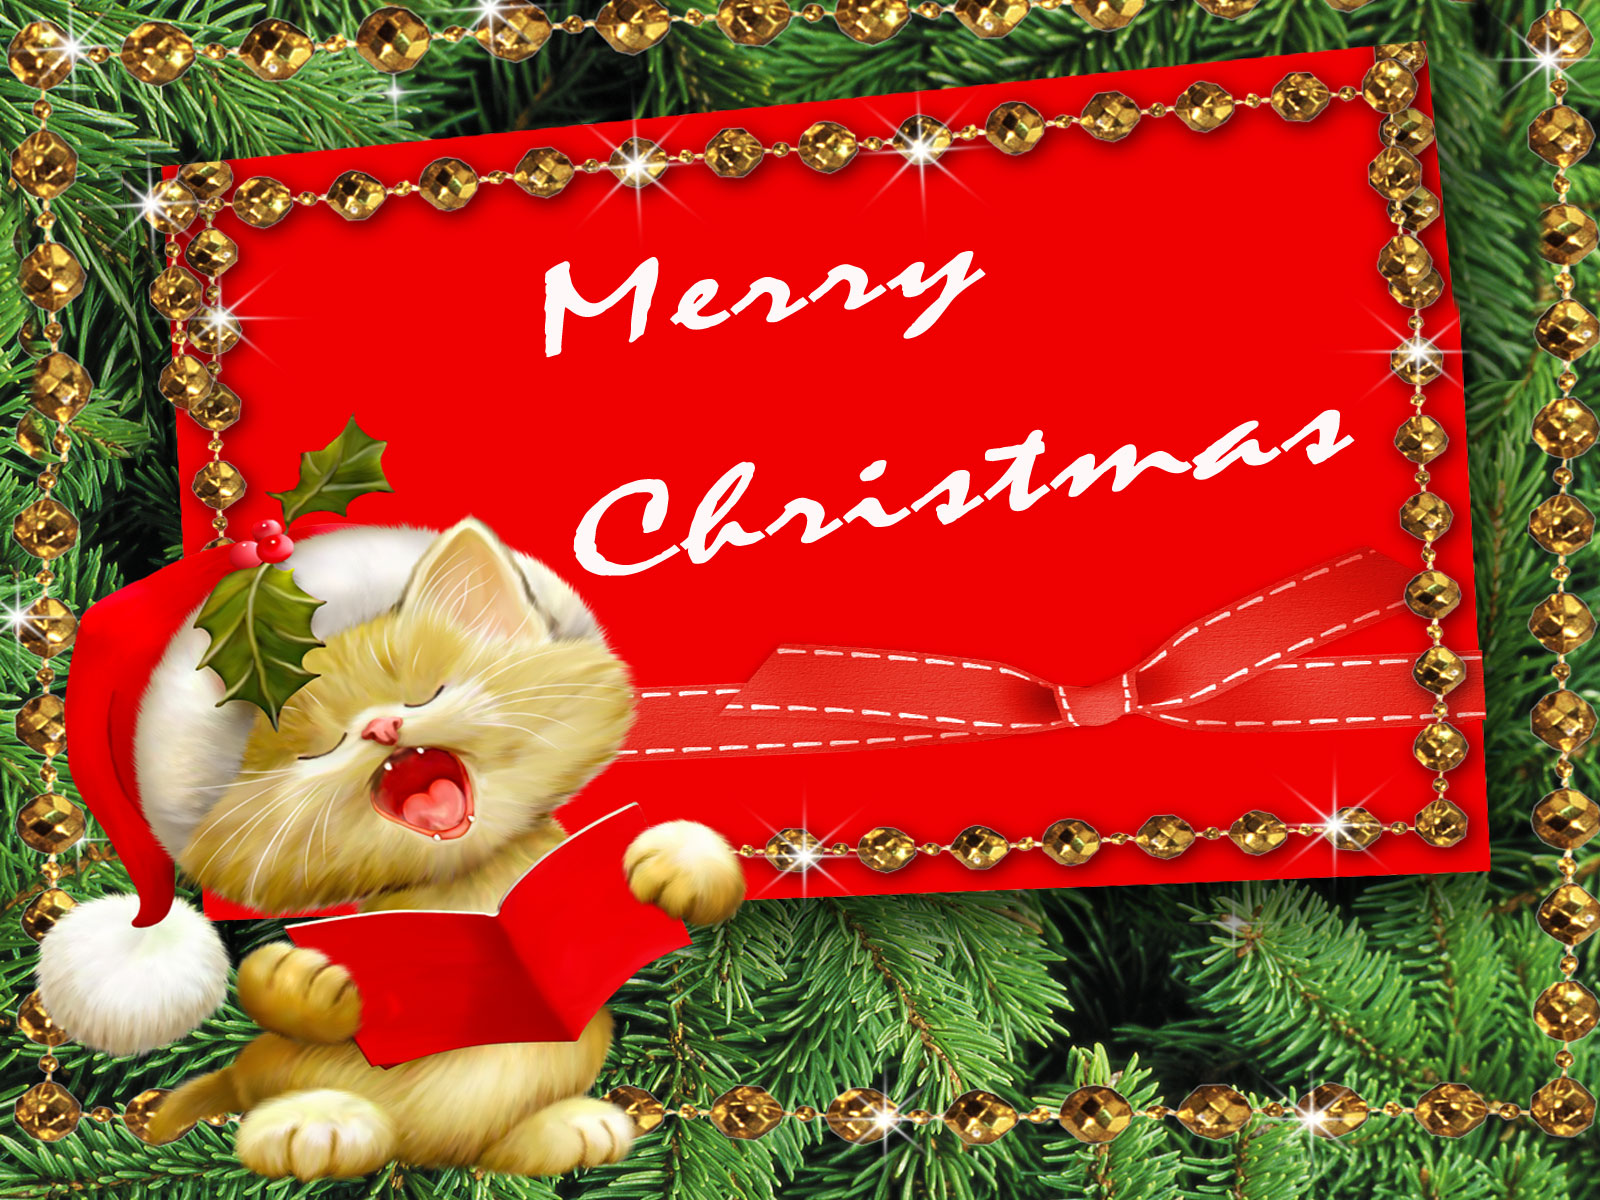 Happy Christmas Wishes Photos. Christmas Wallpapers